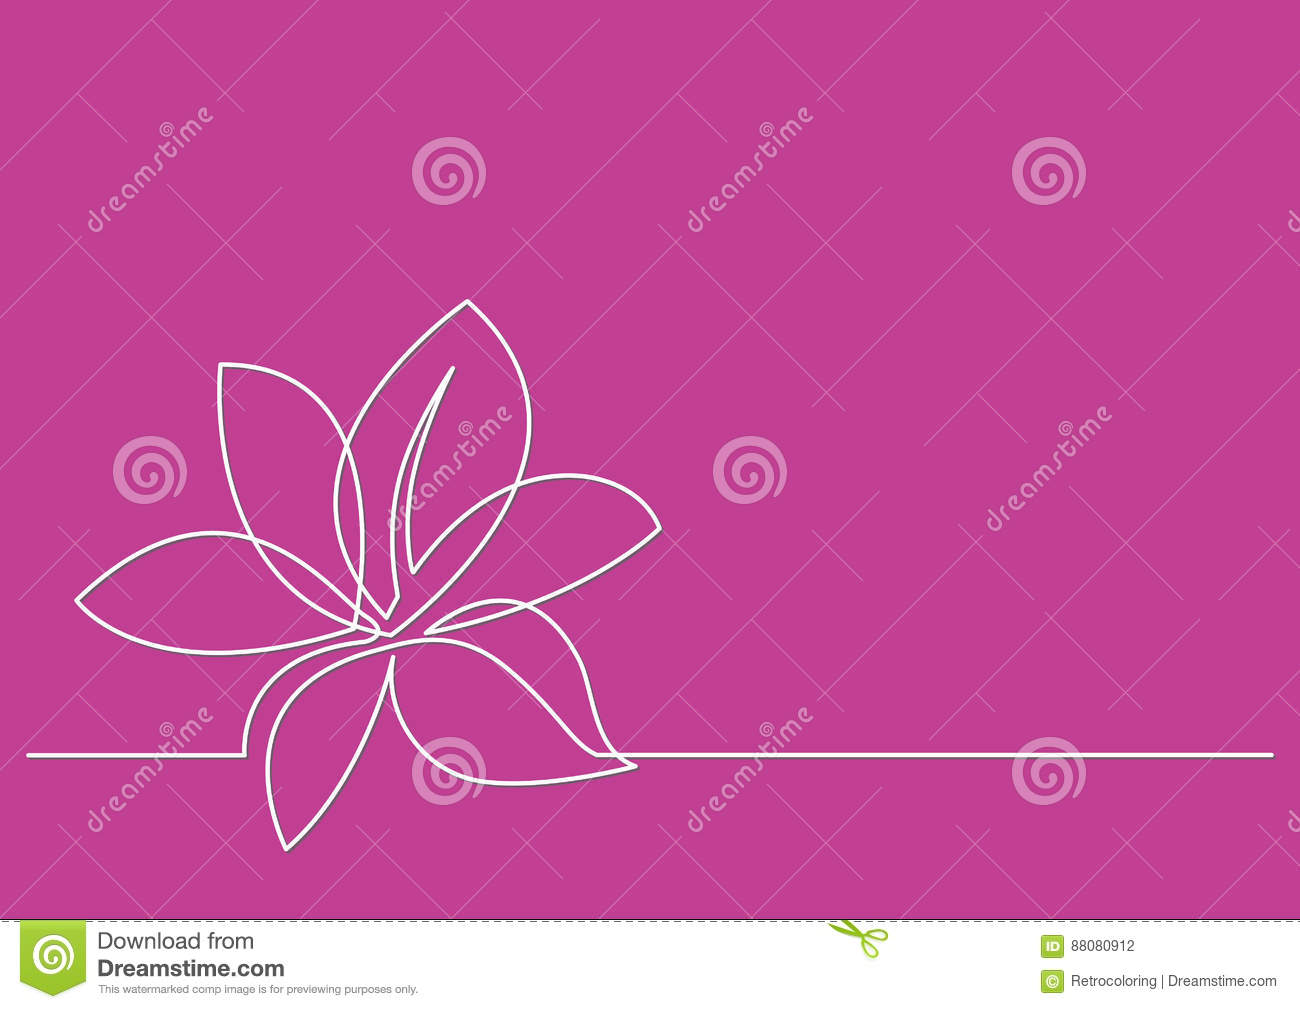 Line Drawing Flower Images : Continuous line drawing of flower stock vector illustration